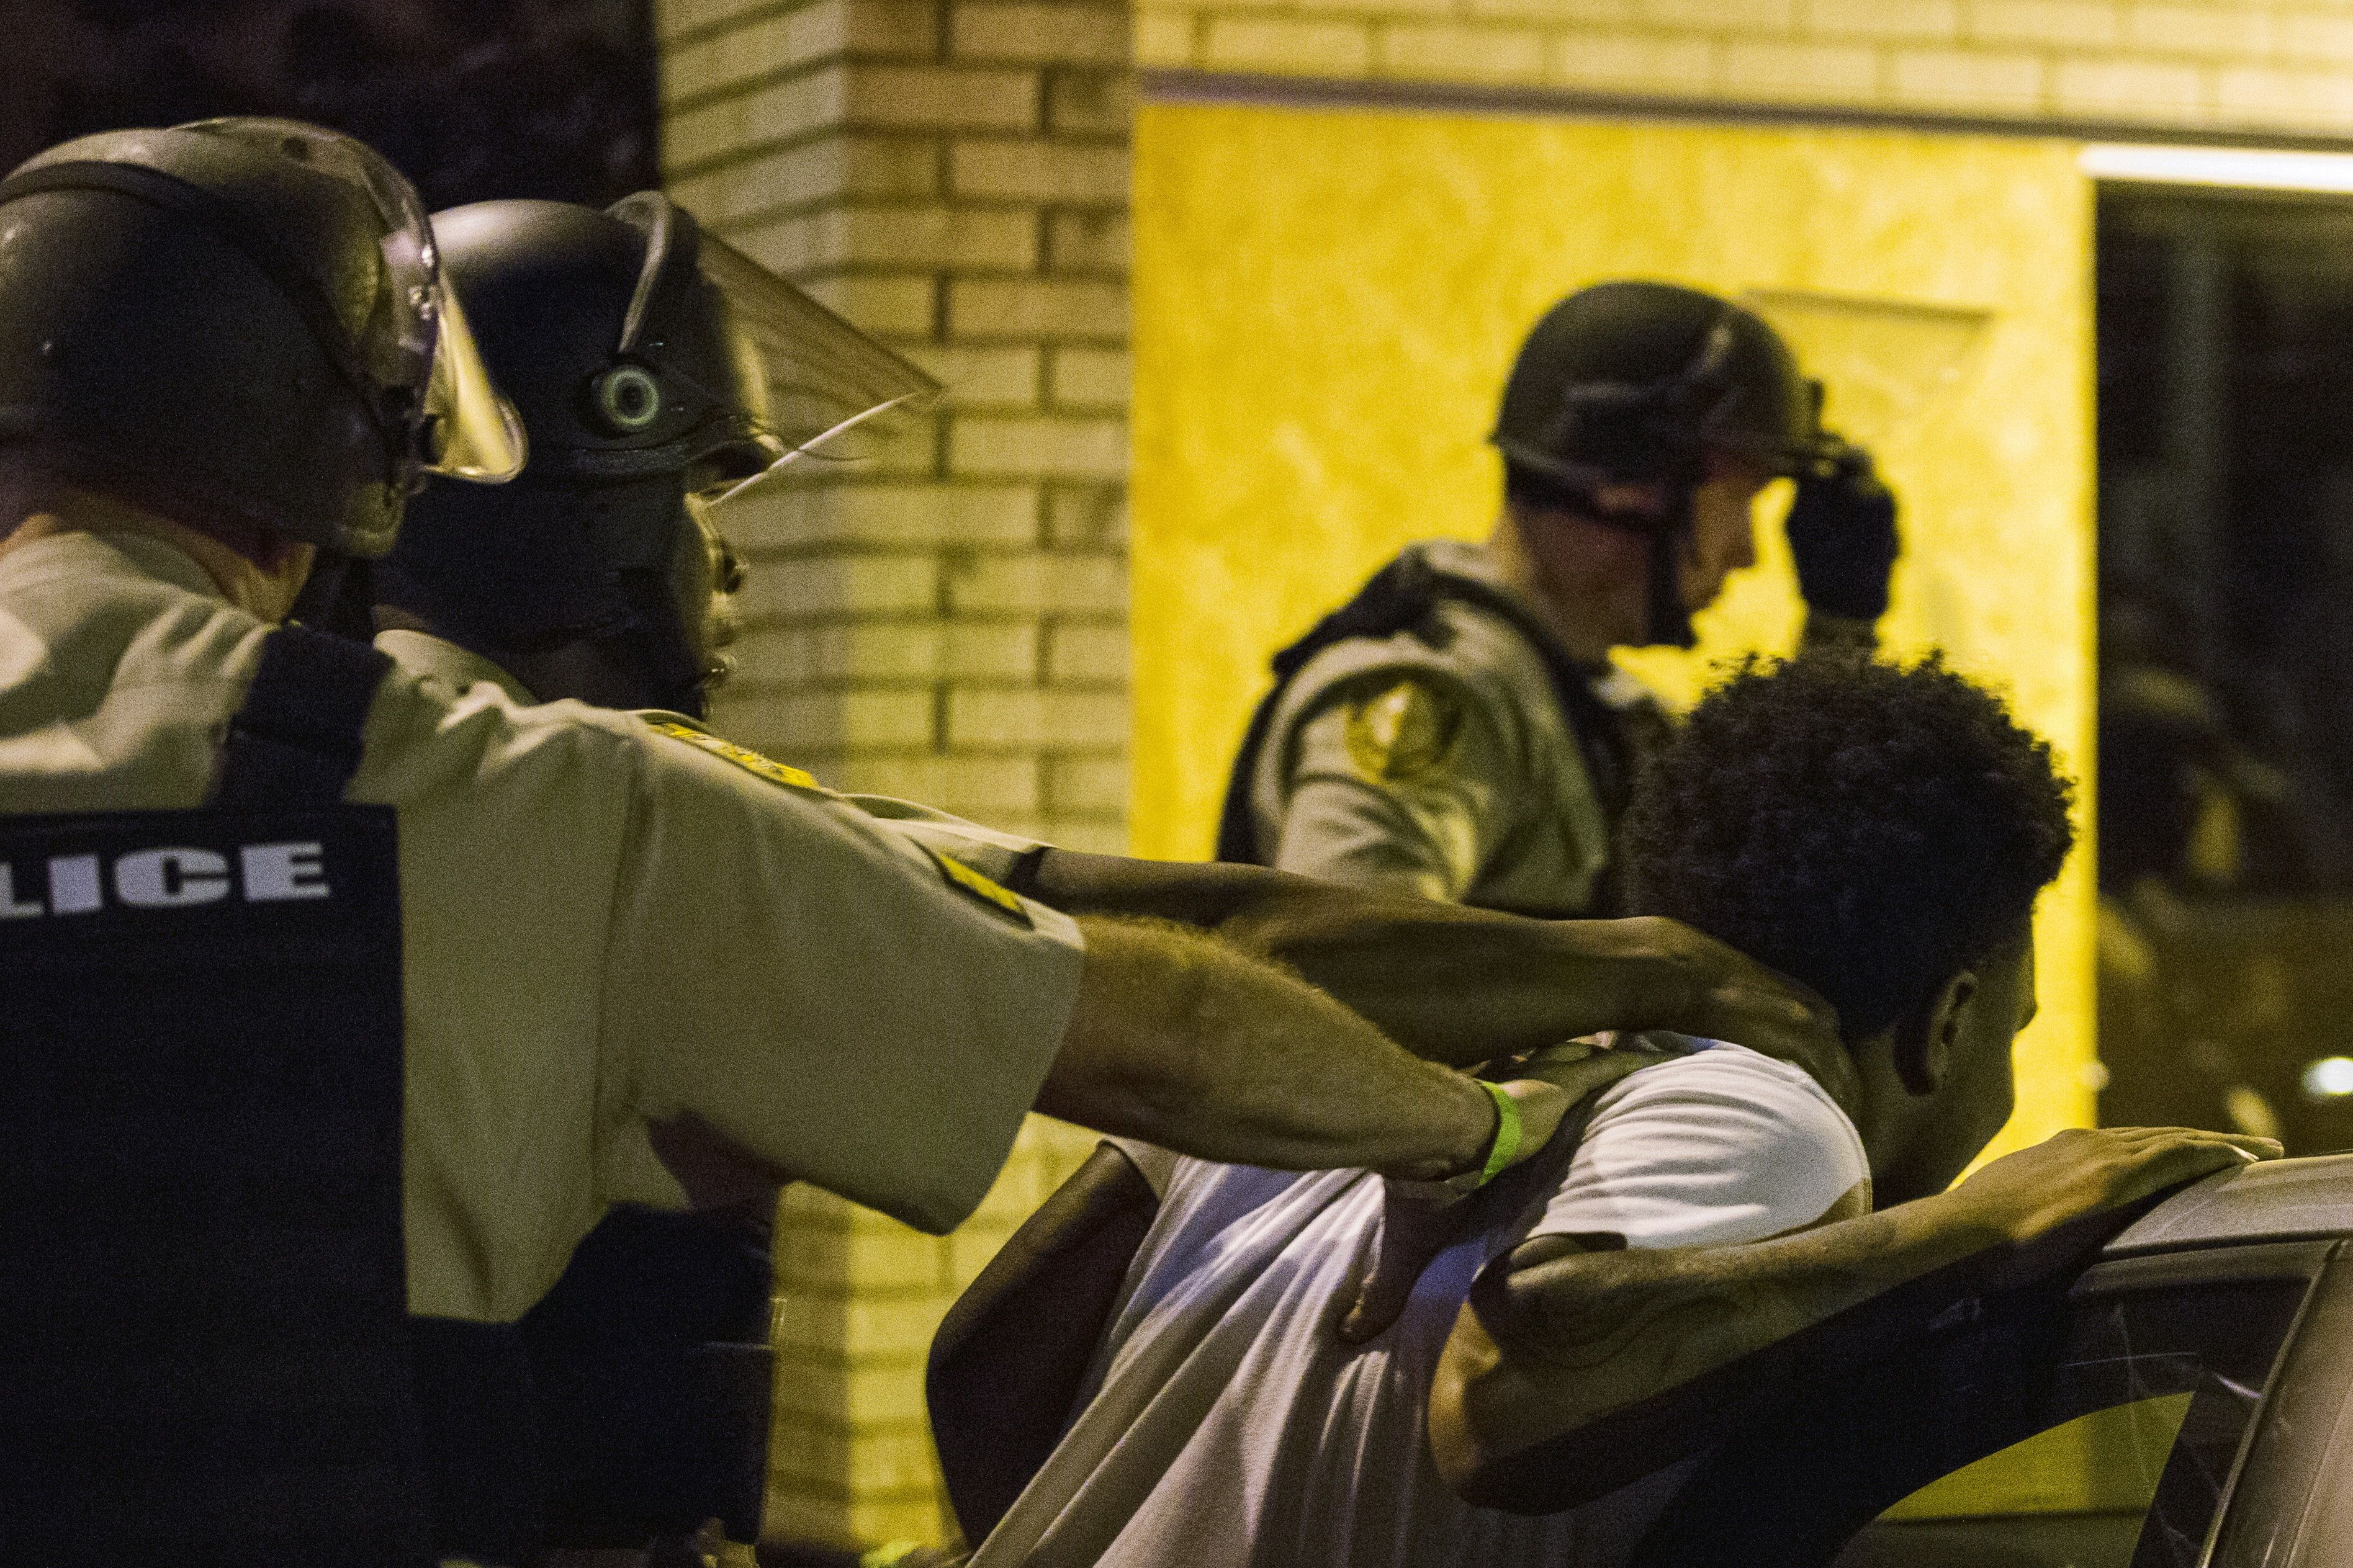 St Louis County police officers arrest an anti-police demonstrator in Ferguson, Missouri August 11, 2015. Police in riot gear clashed with protesters who had gathered in the streets of Ferguson early on Tuesday to mark the anniversary of the police shooting of an unarmed black teen whose death sparked a national outcry over race relations. REUTERS/Lucas Jackson